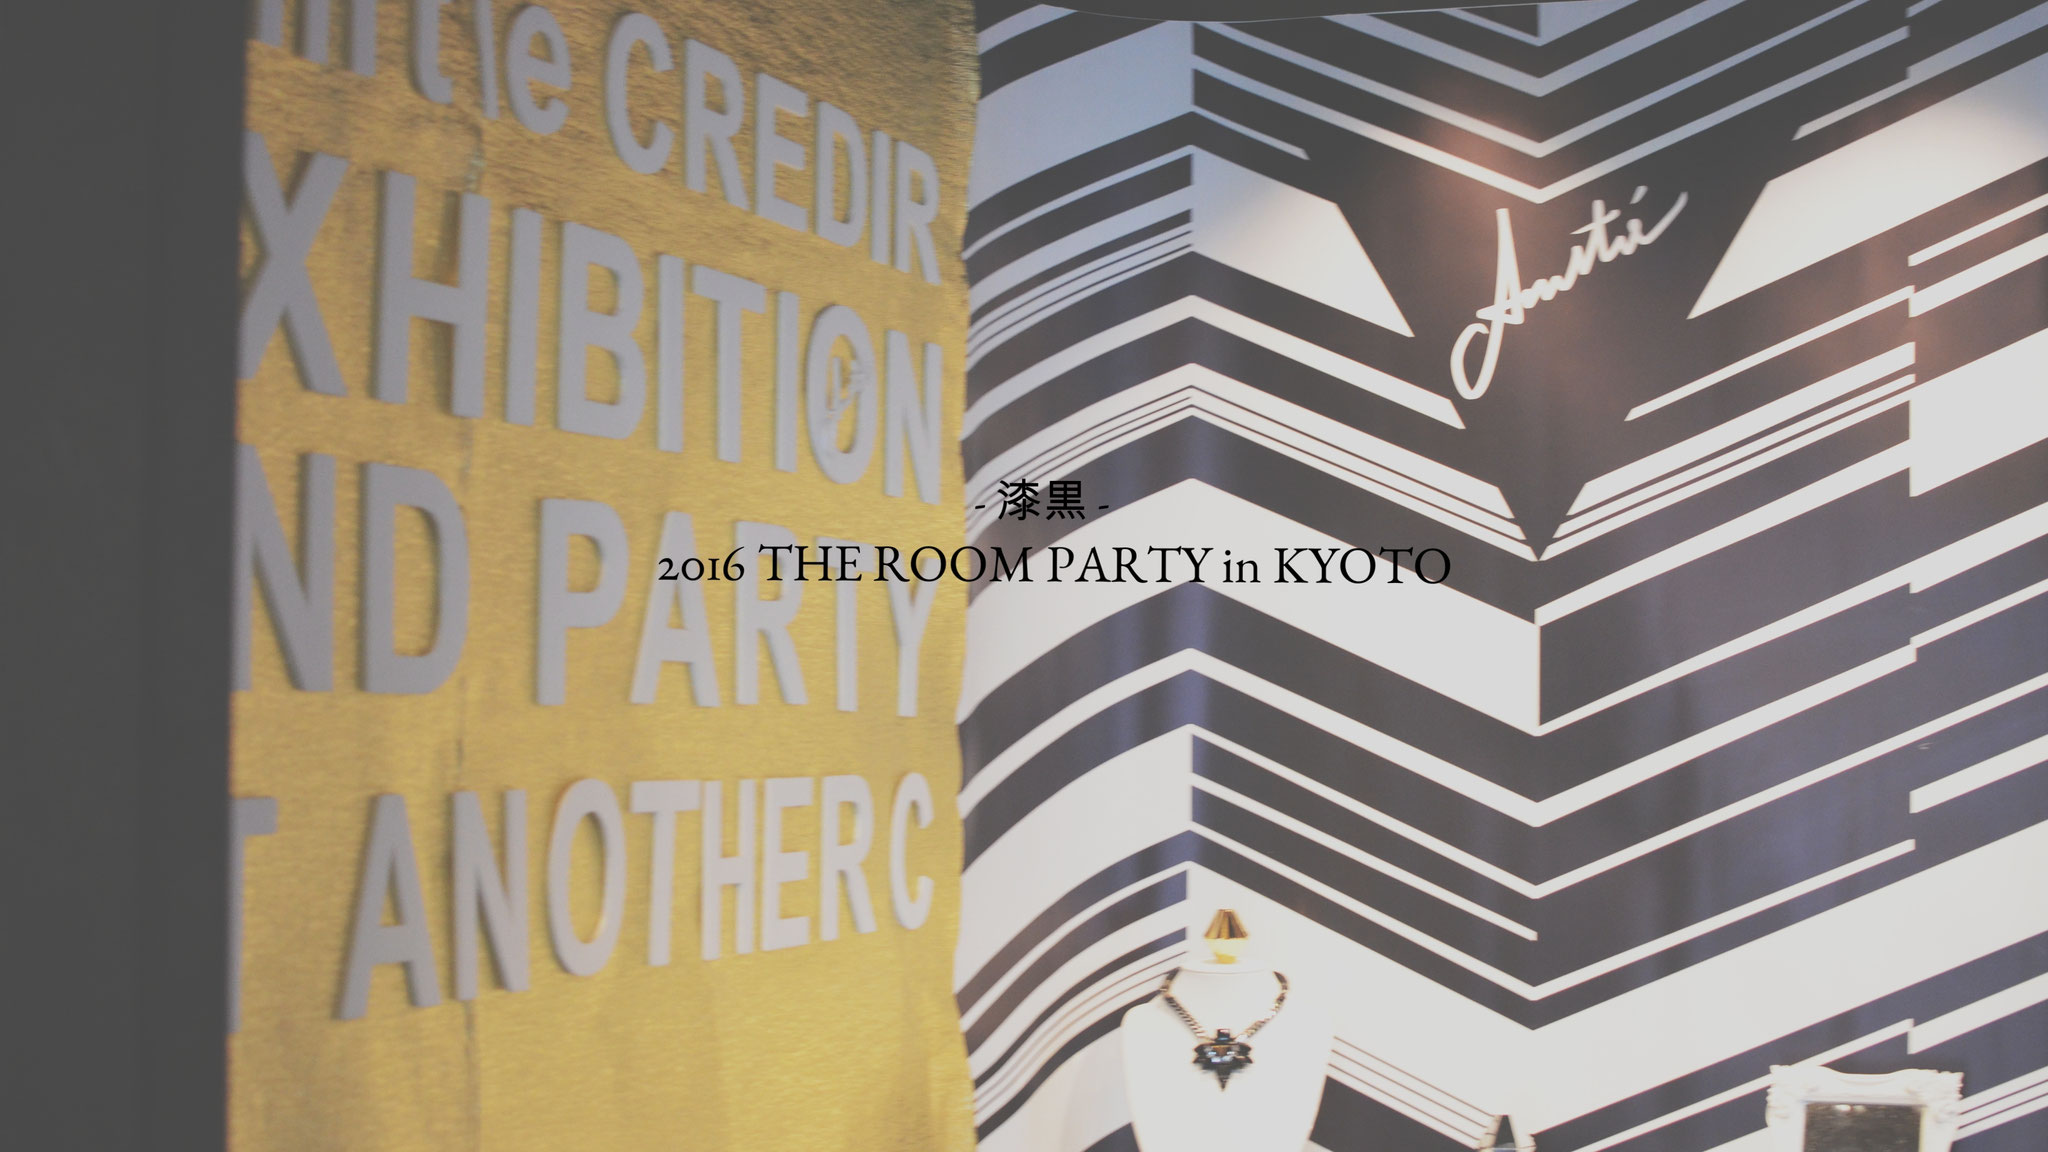 2016 THE ROOM PARTY in KYOTO